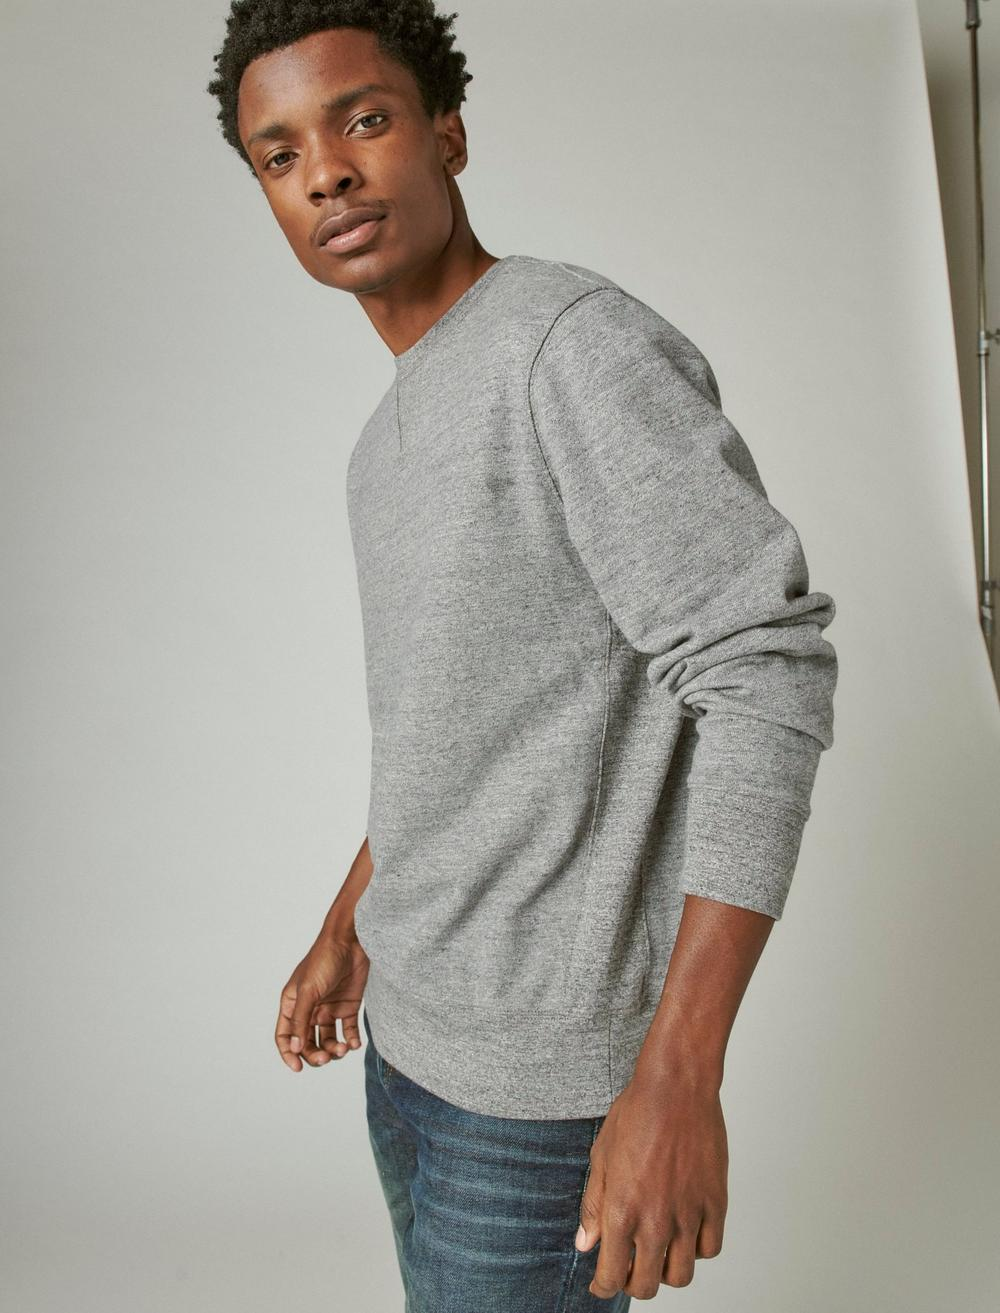 SUEDED FRENCH TERRY CREW SWEATSHIRT, image 3